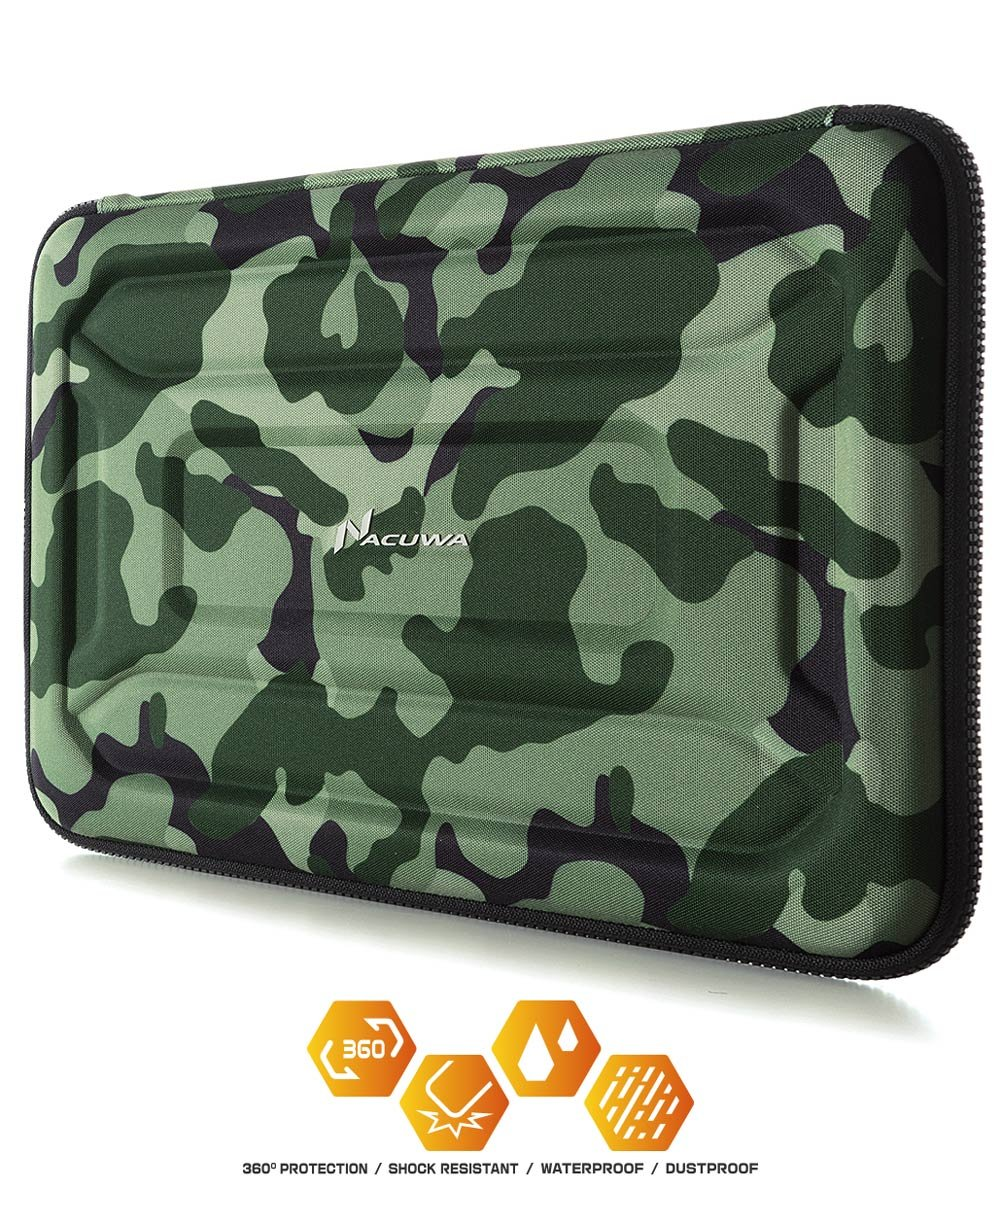 Protective Laptop Case: 13 - 13.3 Inch Computer Carrying Sleeve for 2018 New Macbook Air, Pro, Microsoft Surface or Chromebook - Padded, Waterproof and Shockproof Hard Lap Top Cover Cases - Camo